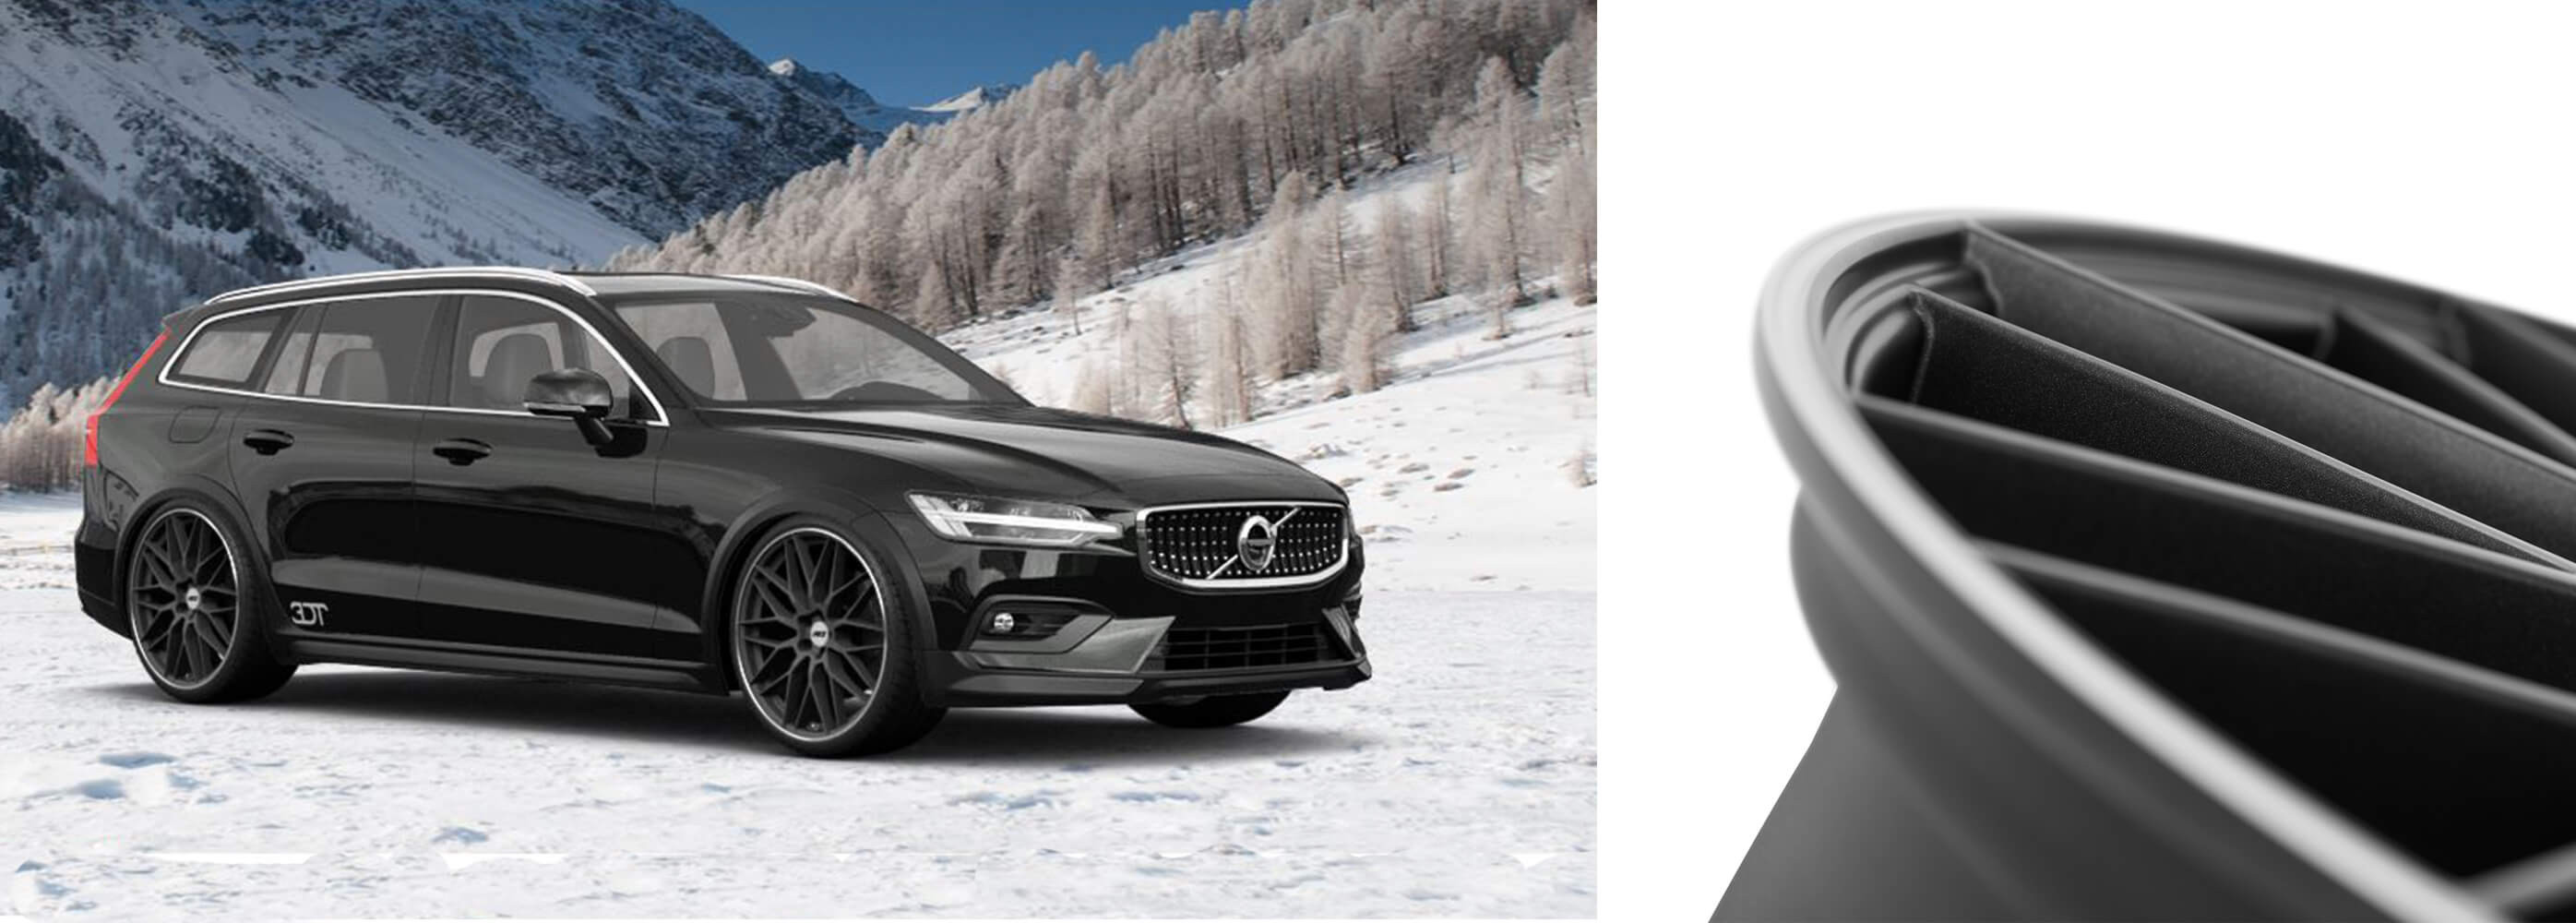 Volvo-V60-cross-country-AEZ-Crest-dark.jpg(2)